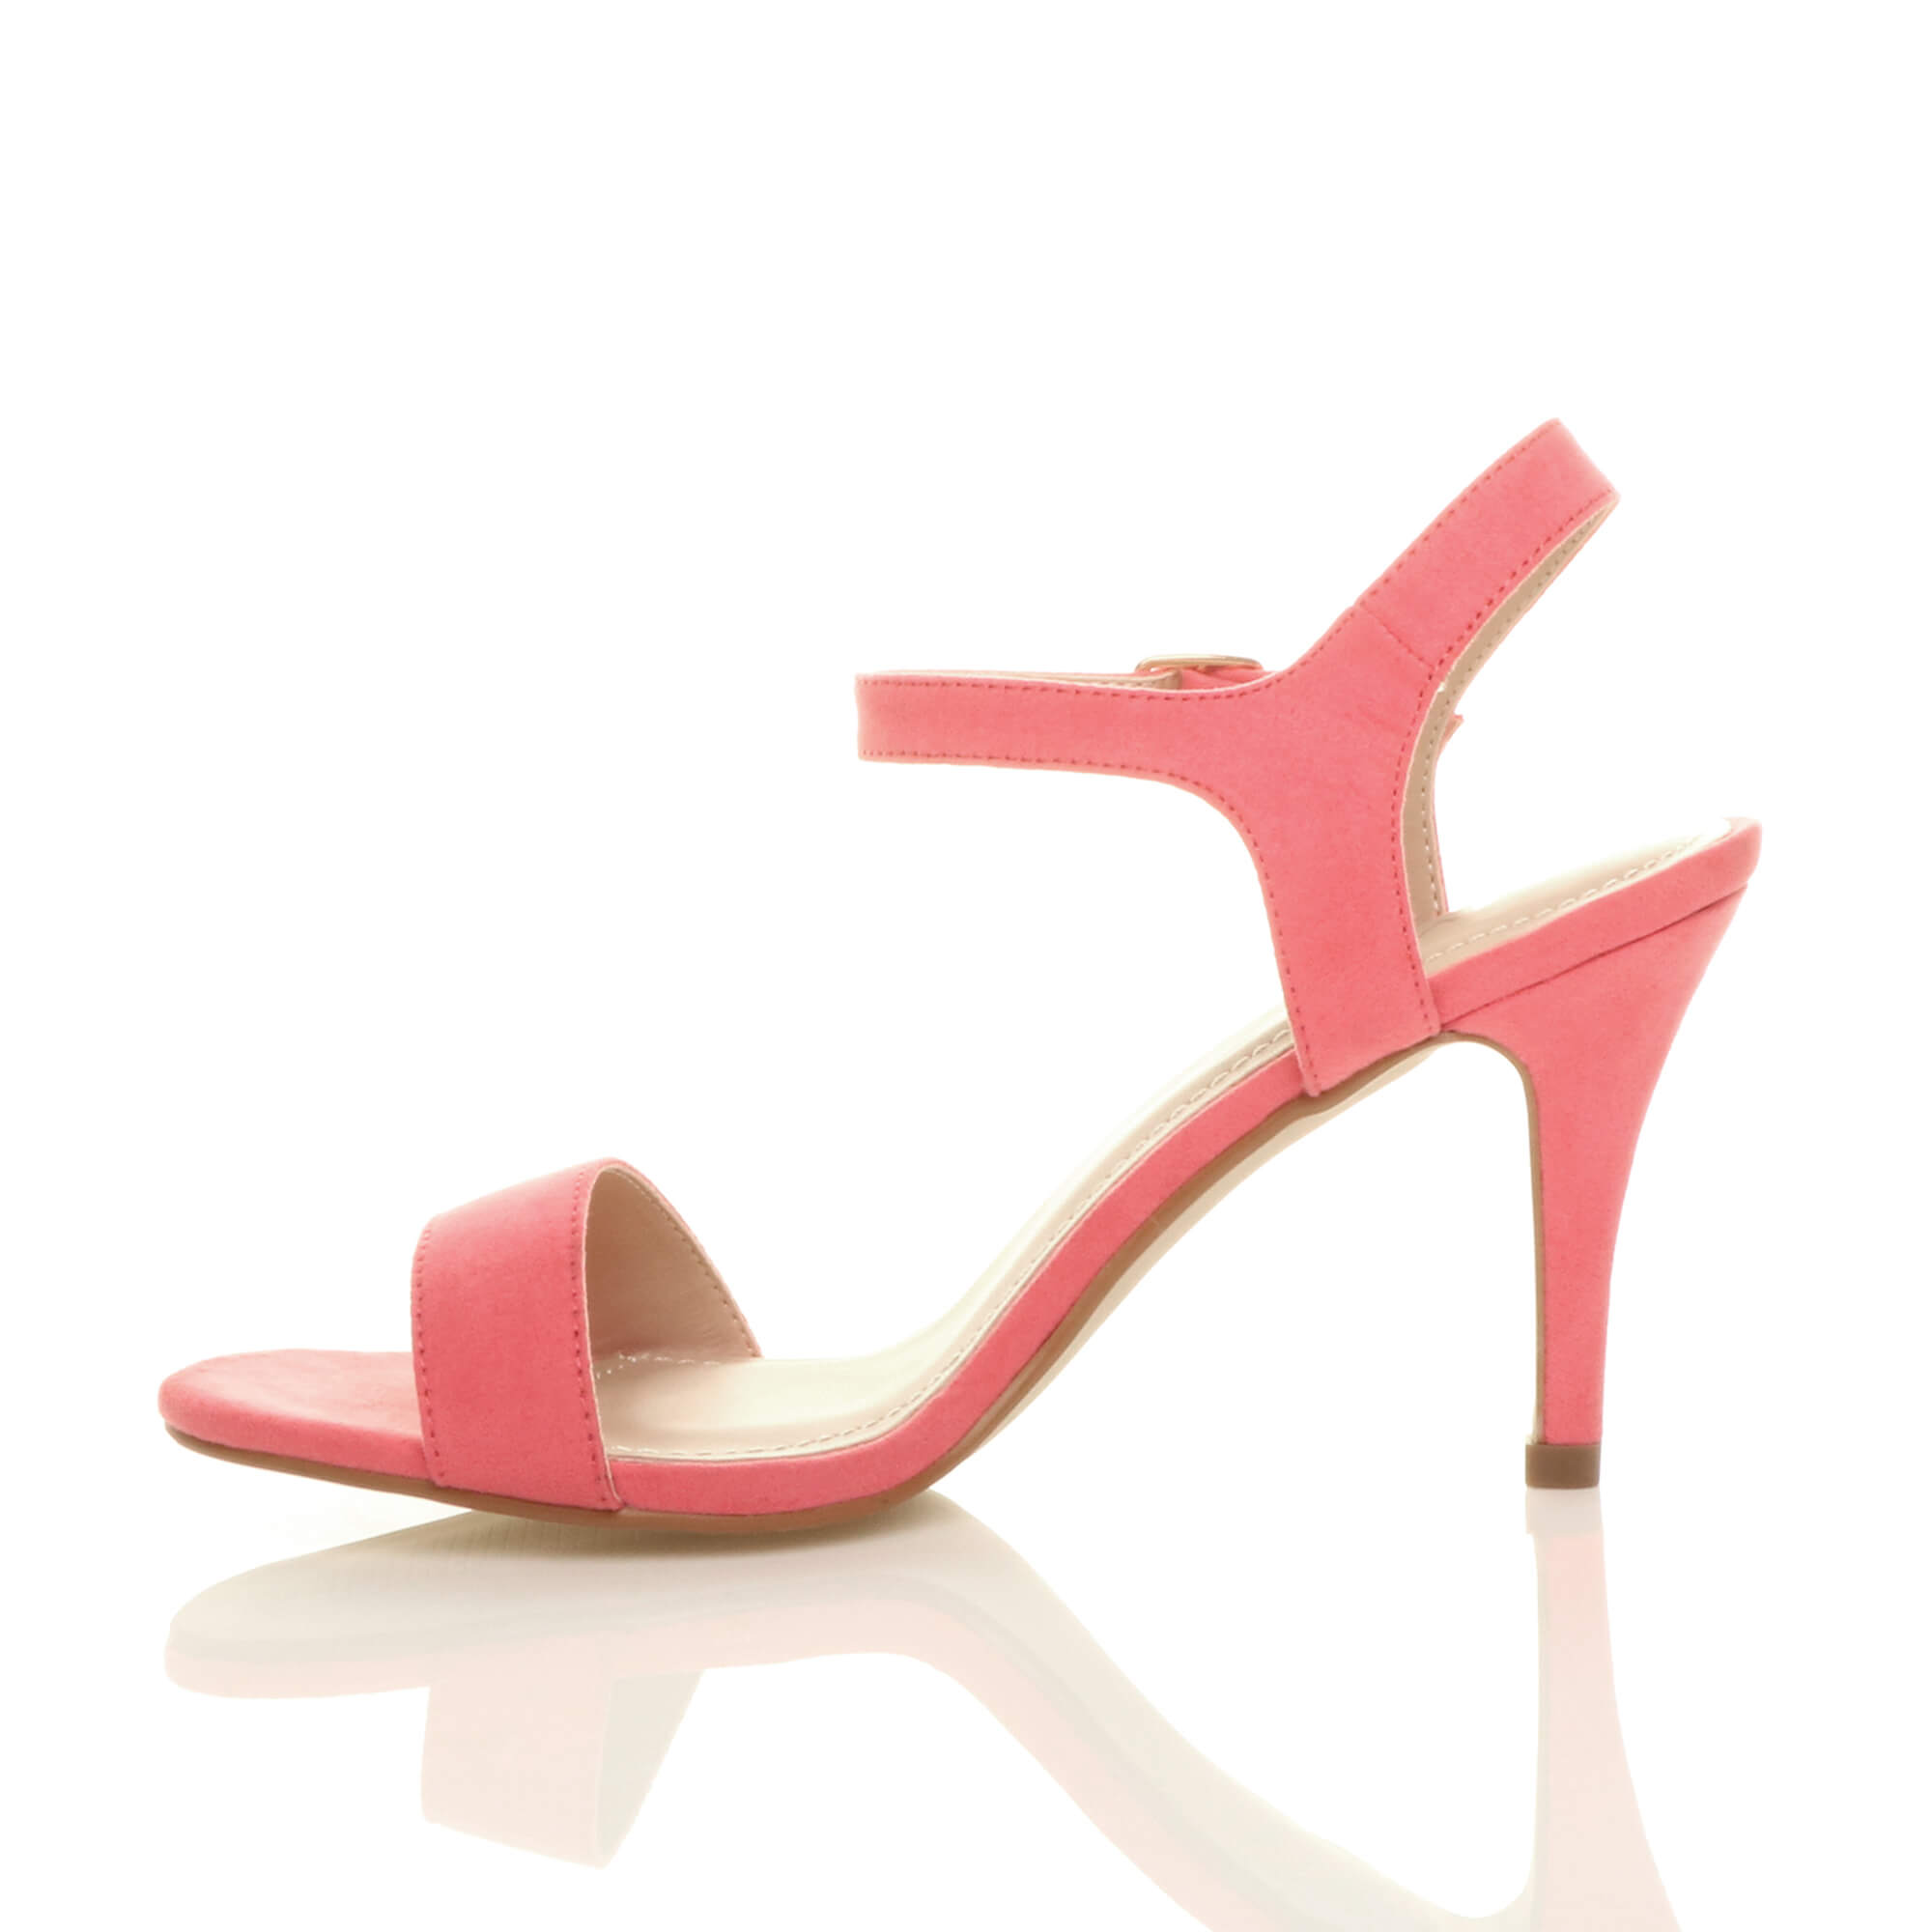 WOMENS-LADIES-HIGH-HEEL-BUCKLE-STRAPPY-BASIC-BARELY-THERE-SANDALS-SHOES-SIZE thumbnail 25